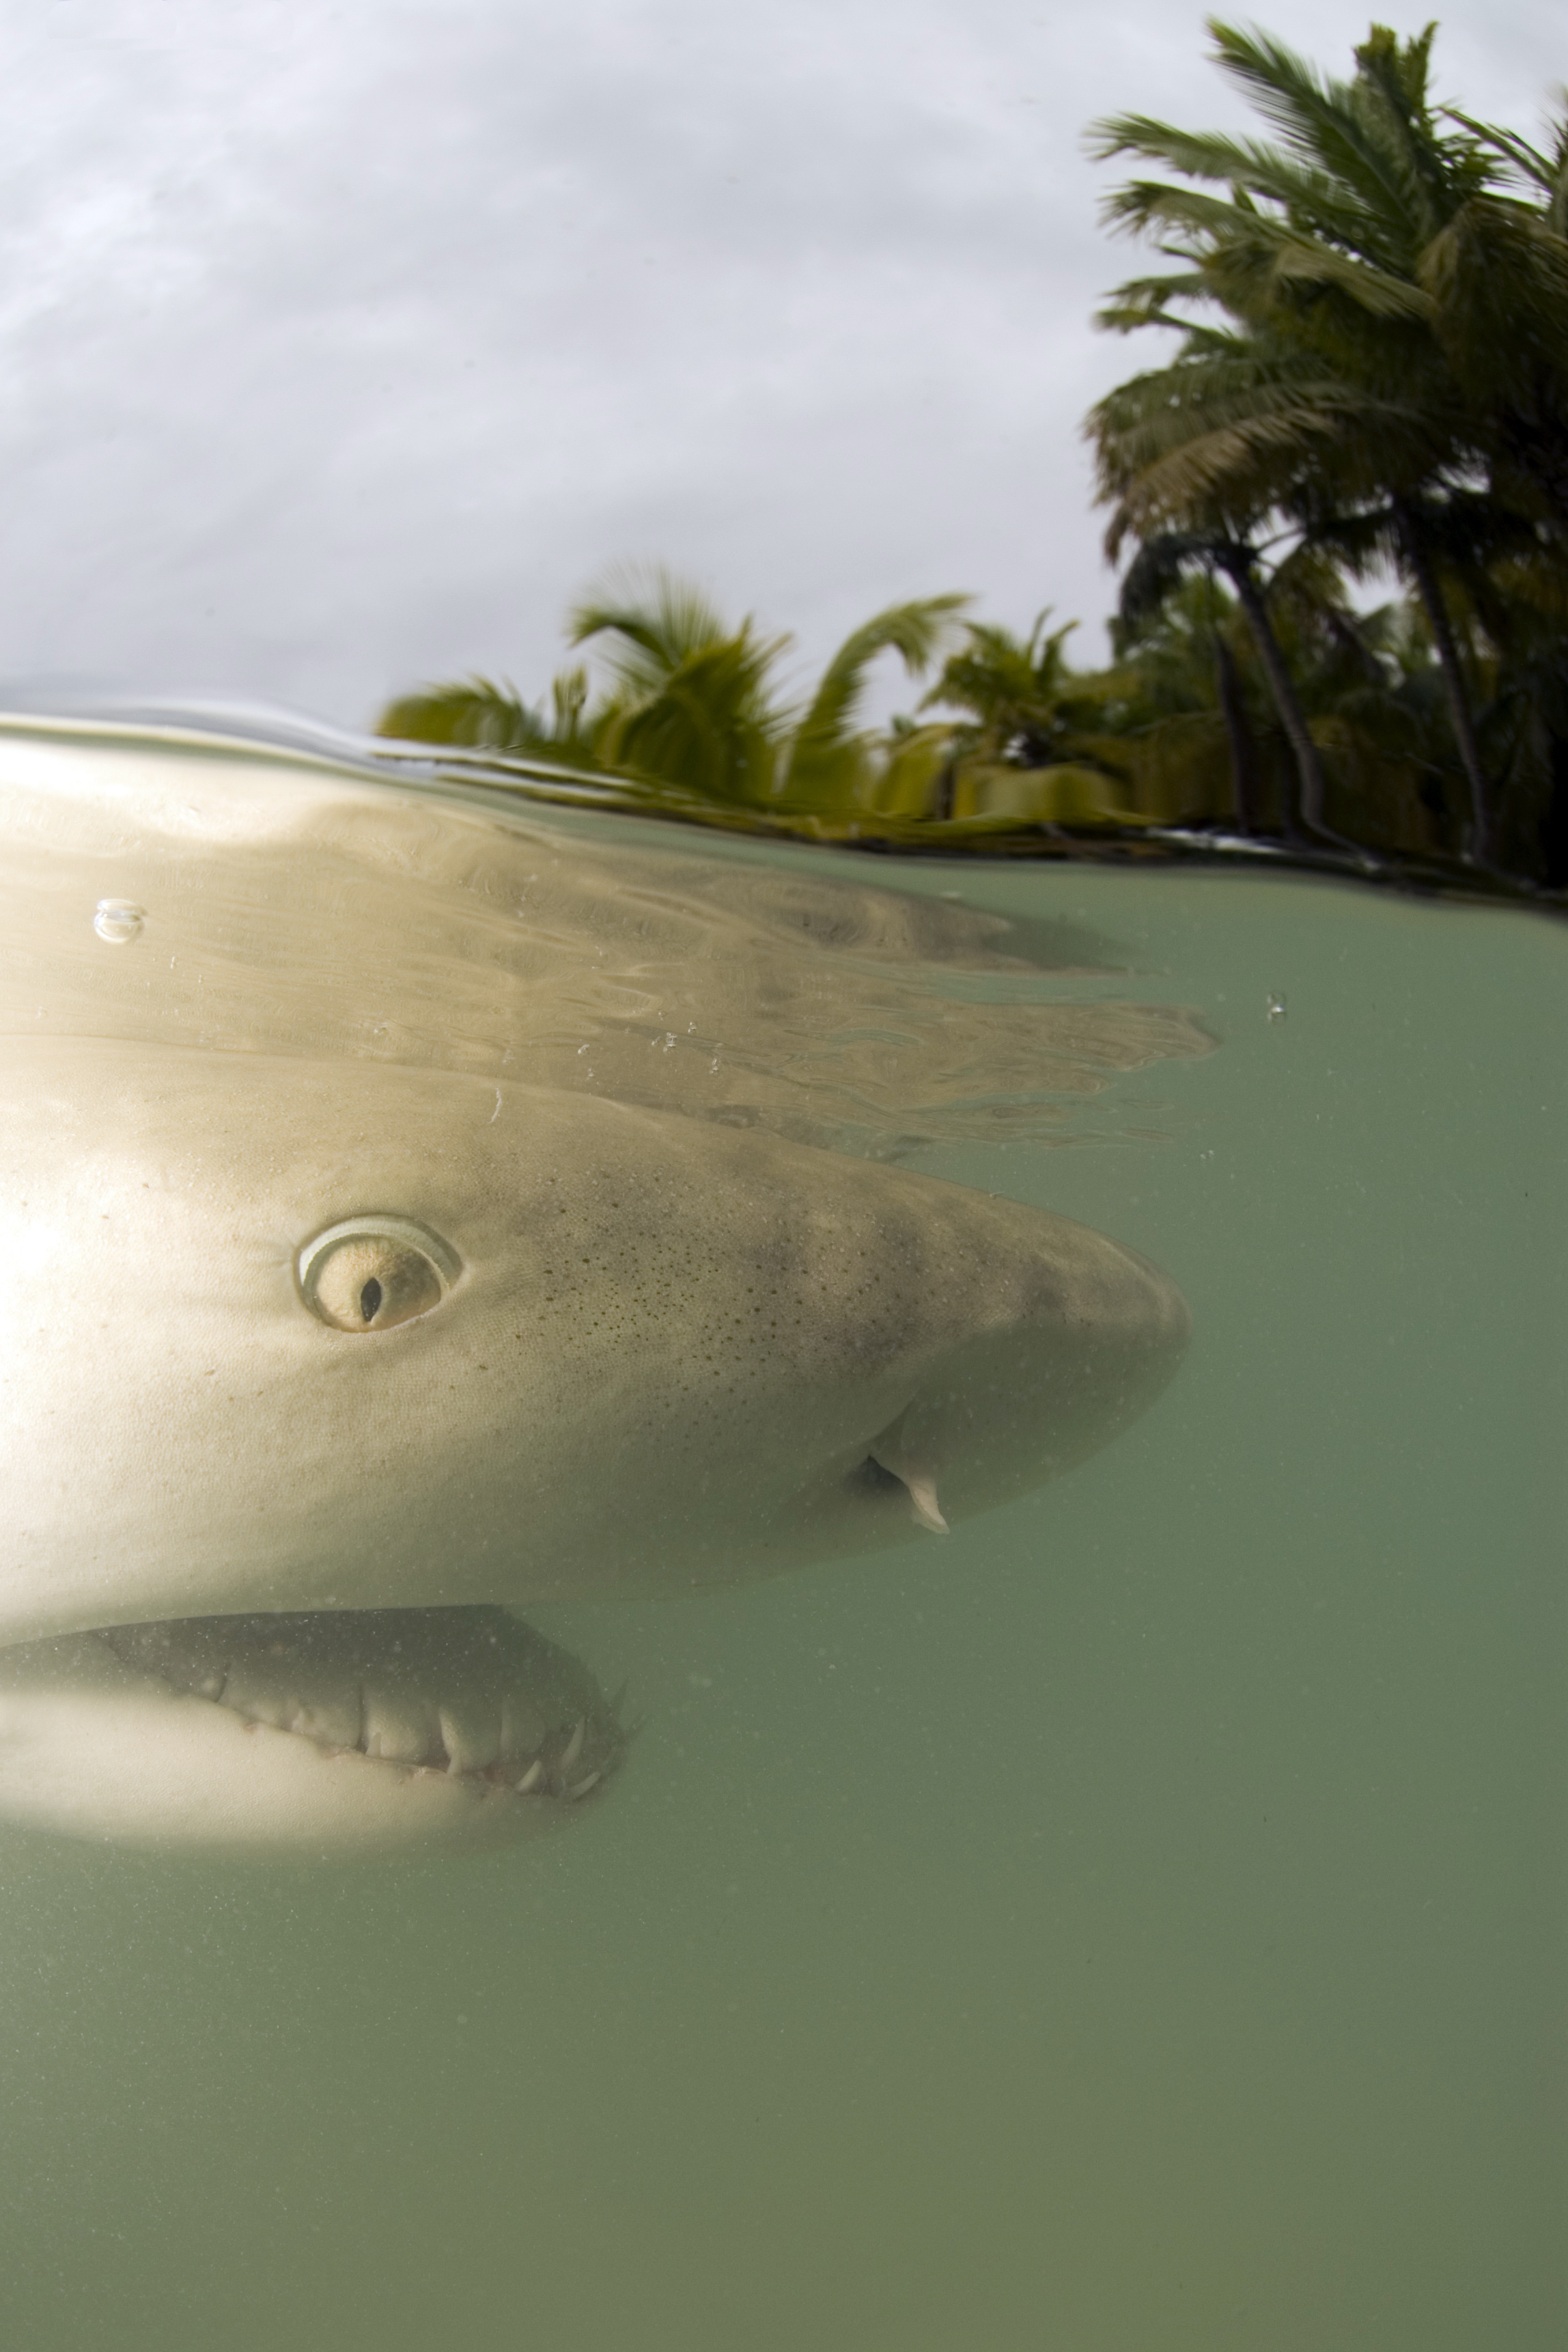 A common sight for the atoll researchers! Sicklefin lemon sharks constantly patrol the shallows of the Atoll in search of rays and fish.